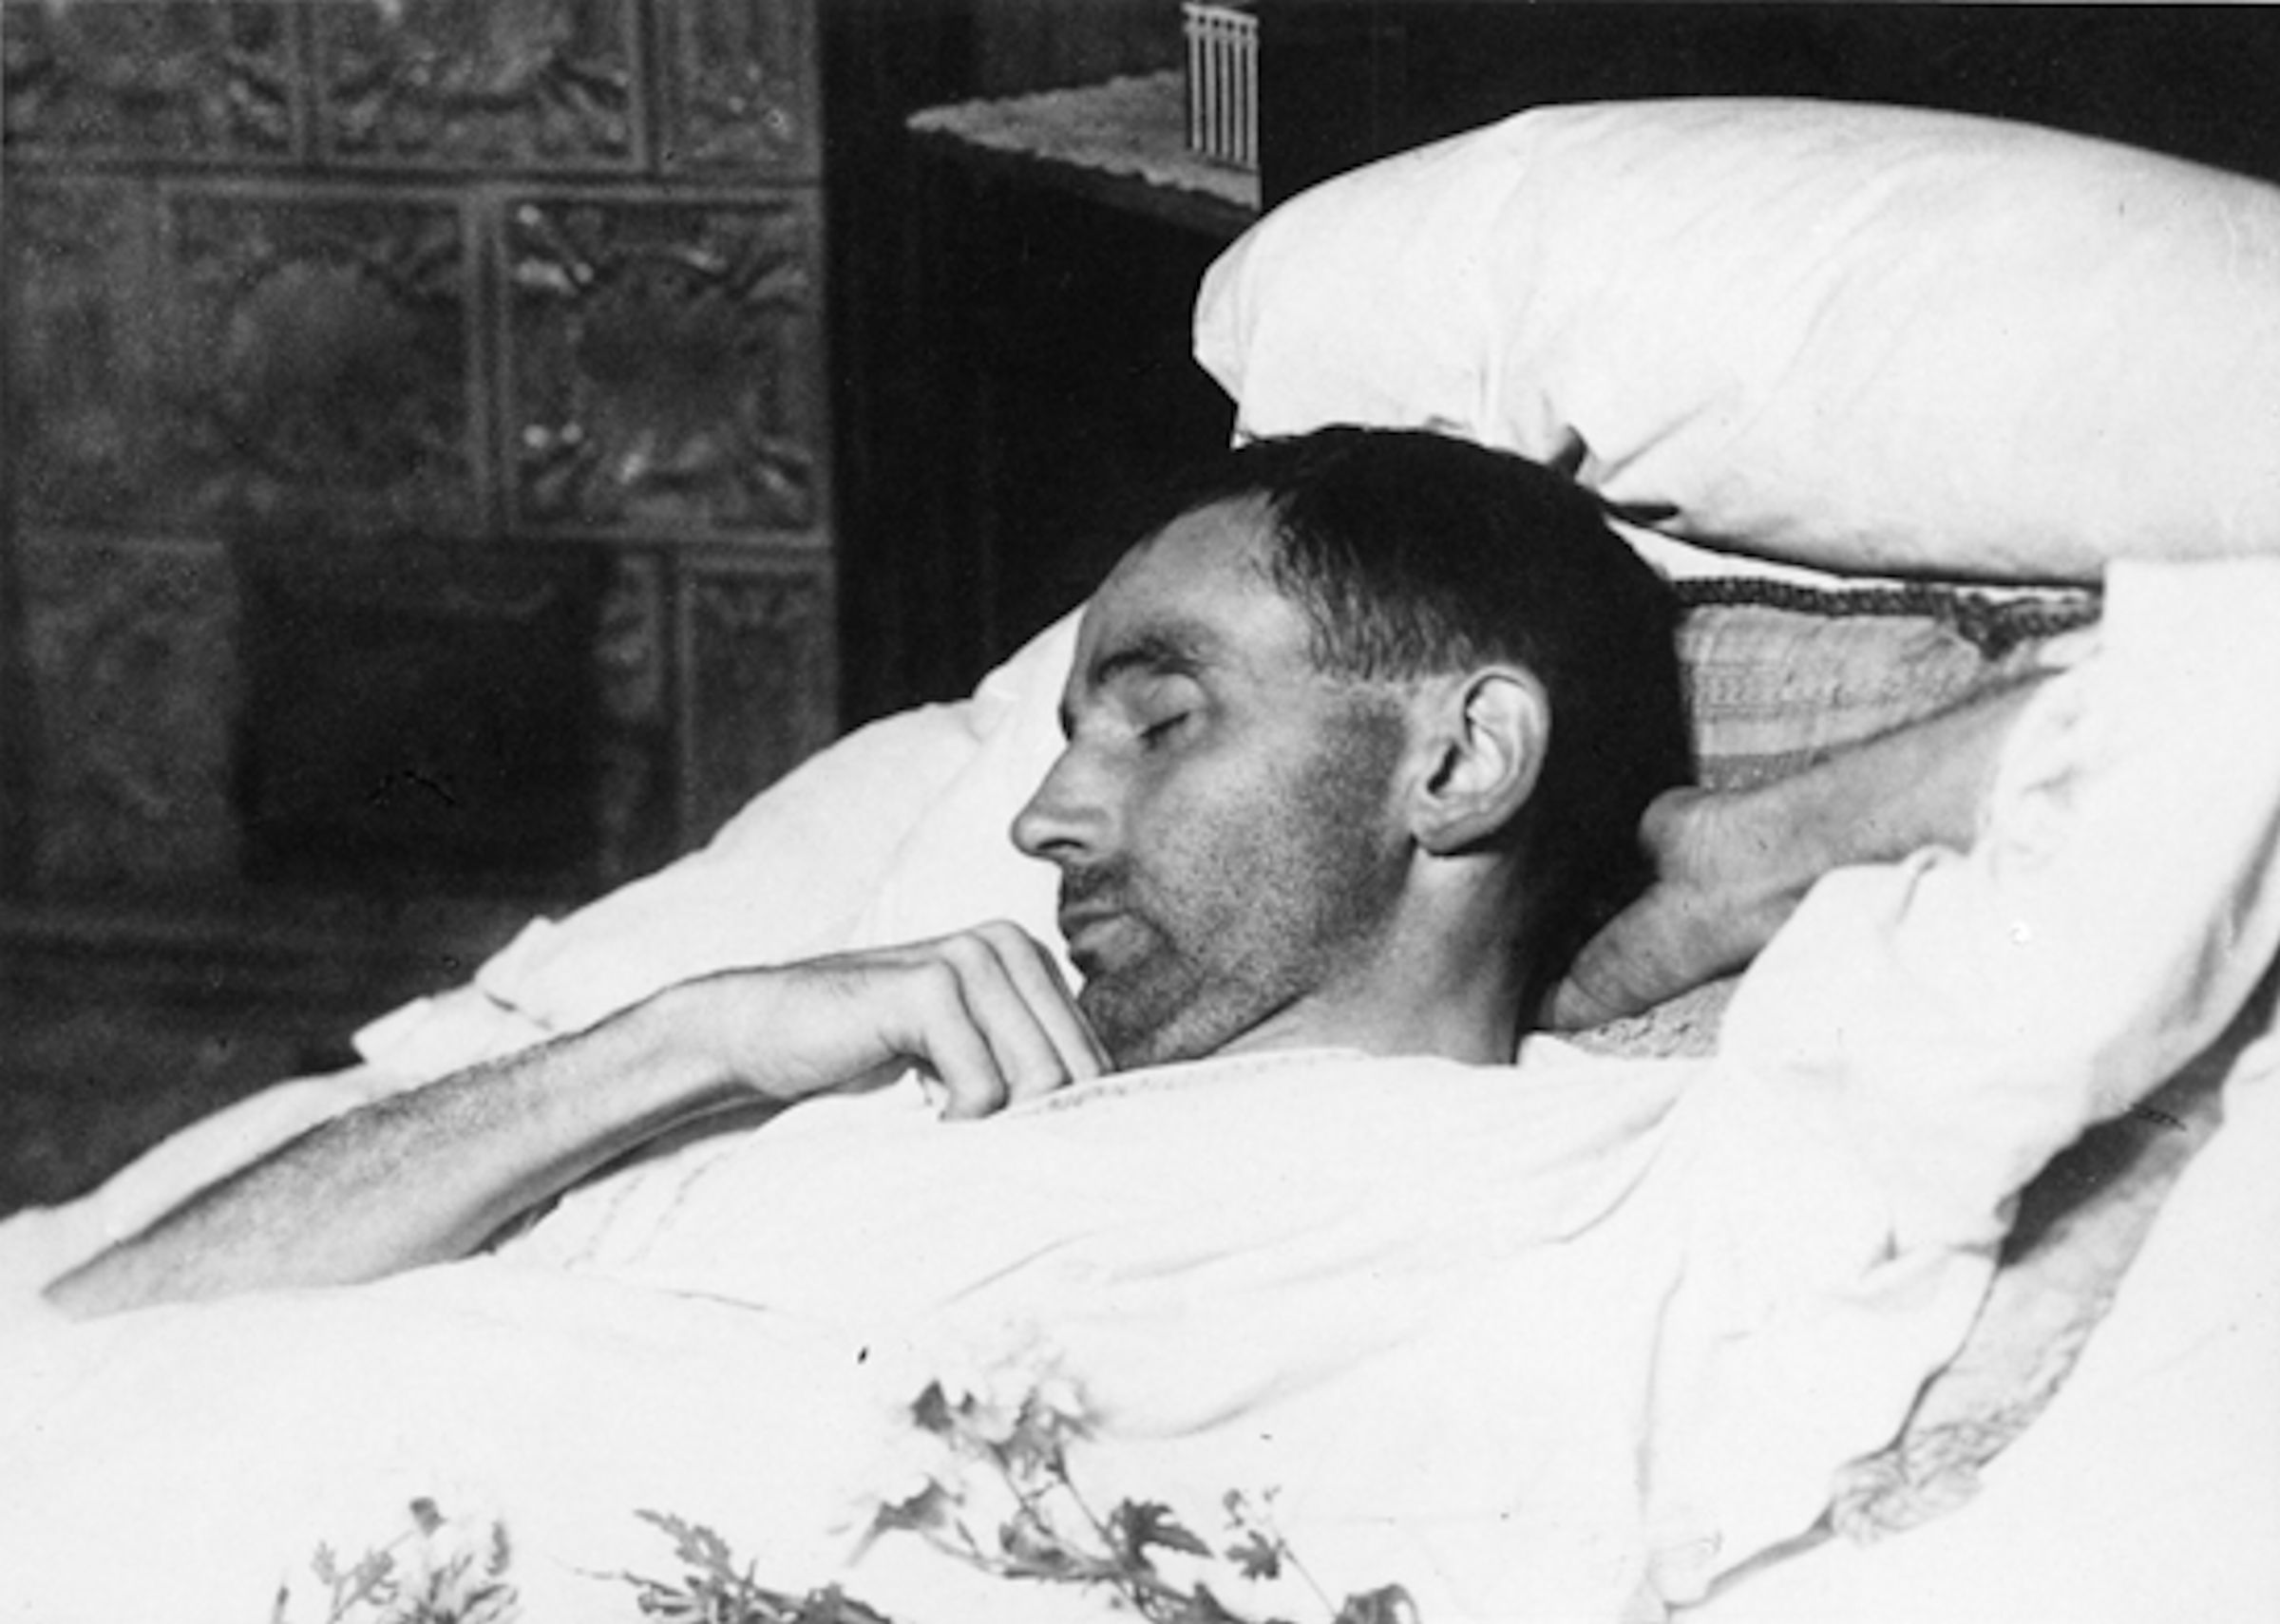 Egon Schiele on his deathbed